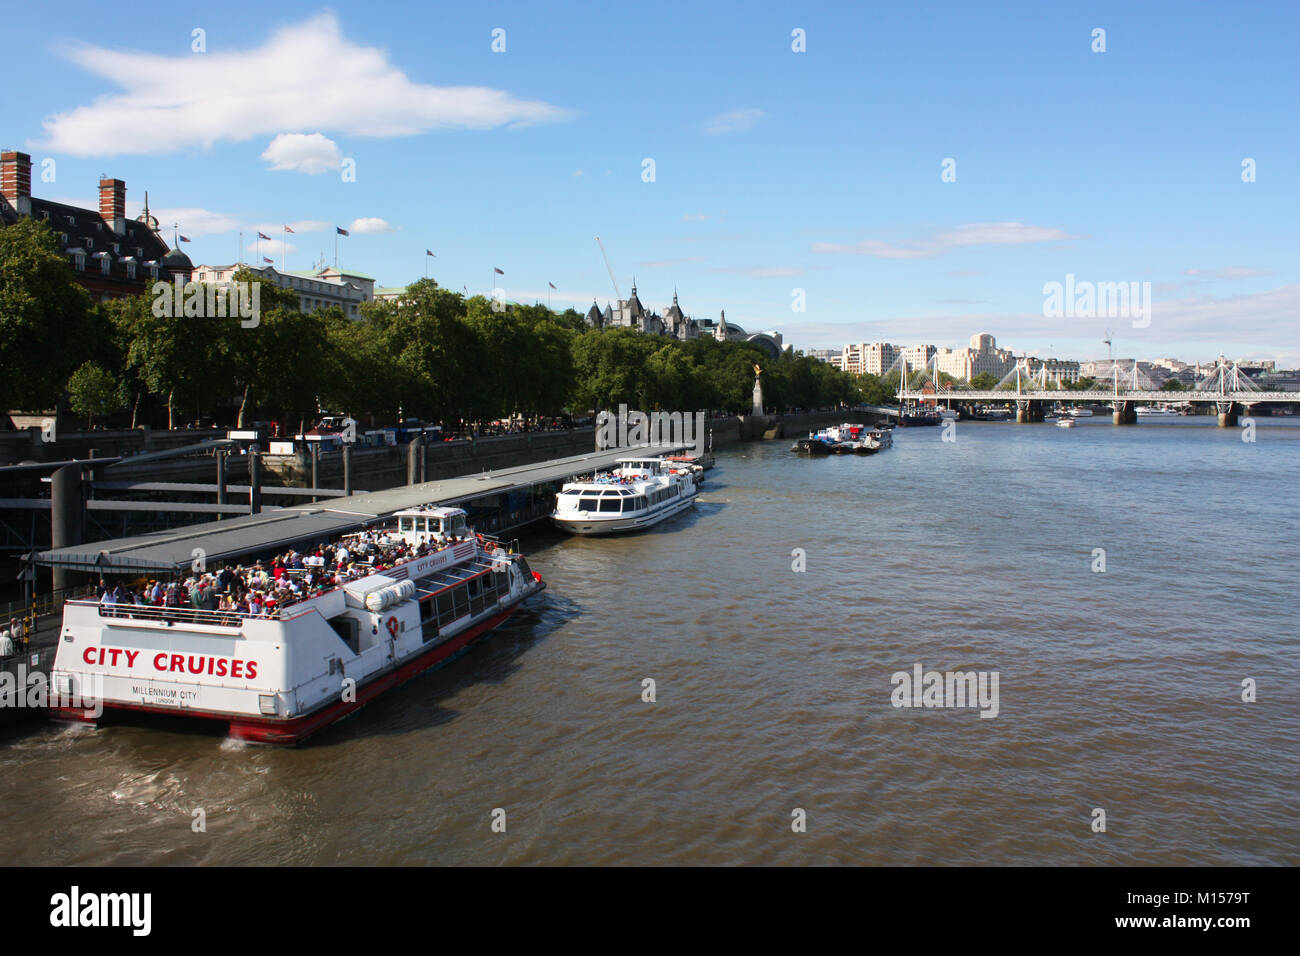 Thames river cruise, London, UK Stock Photo